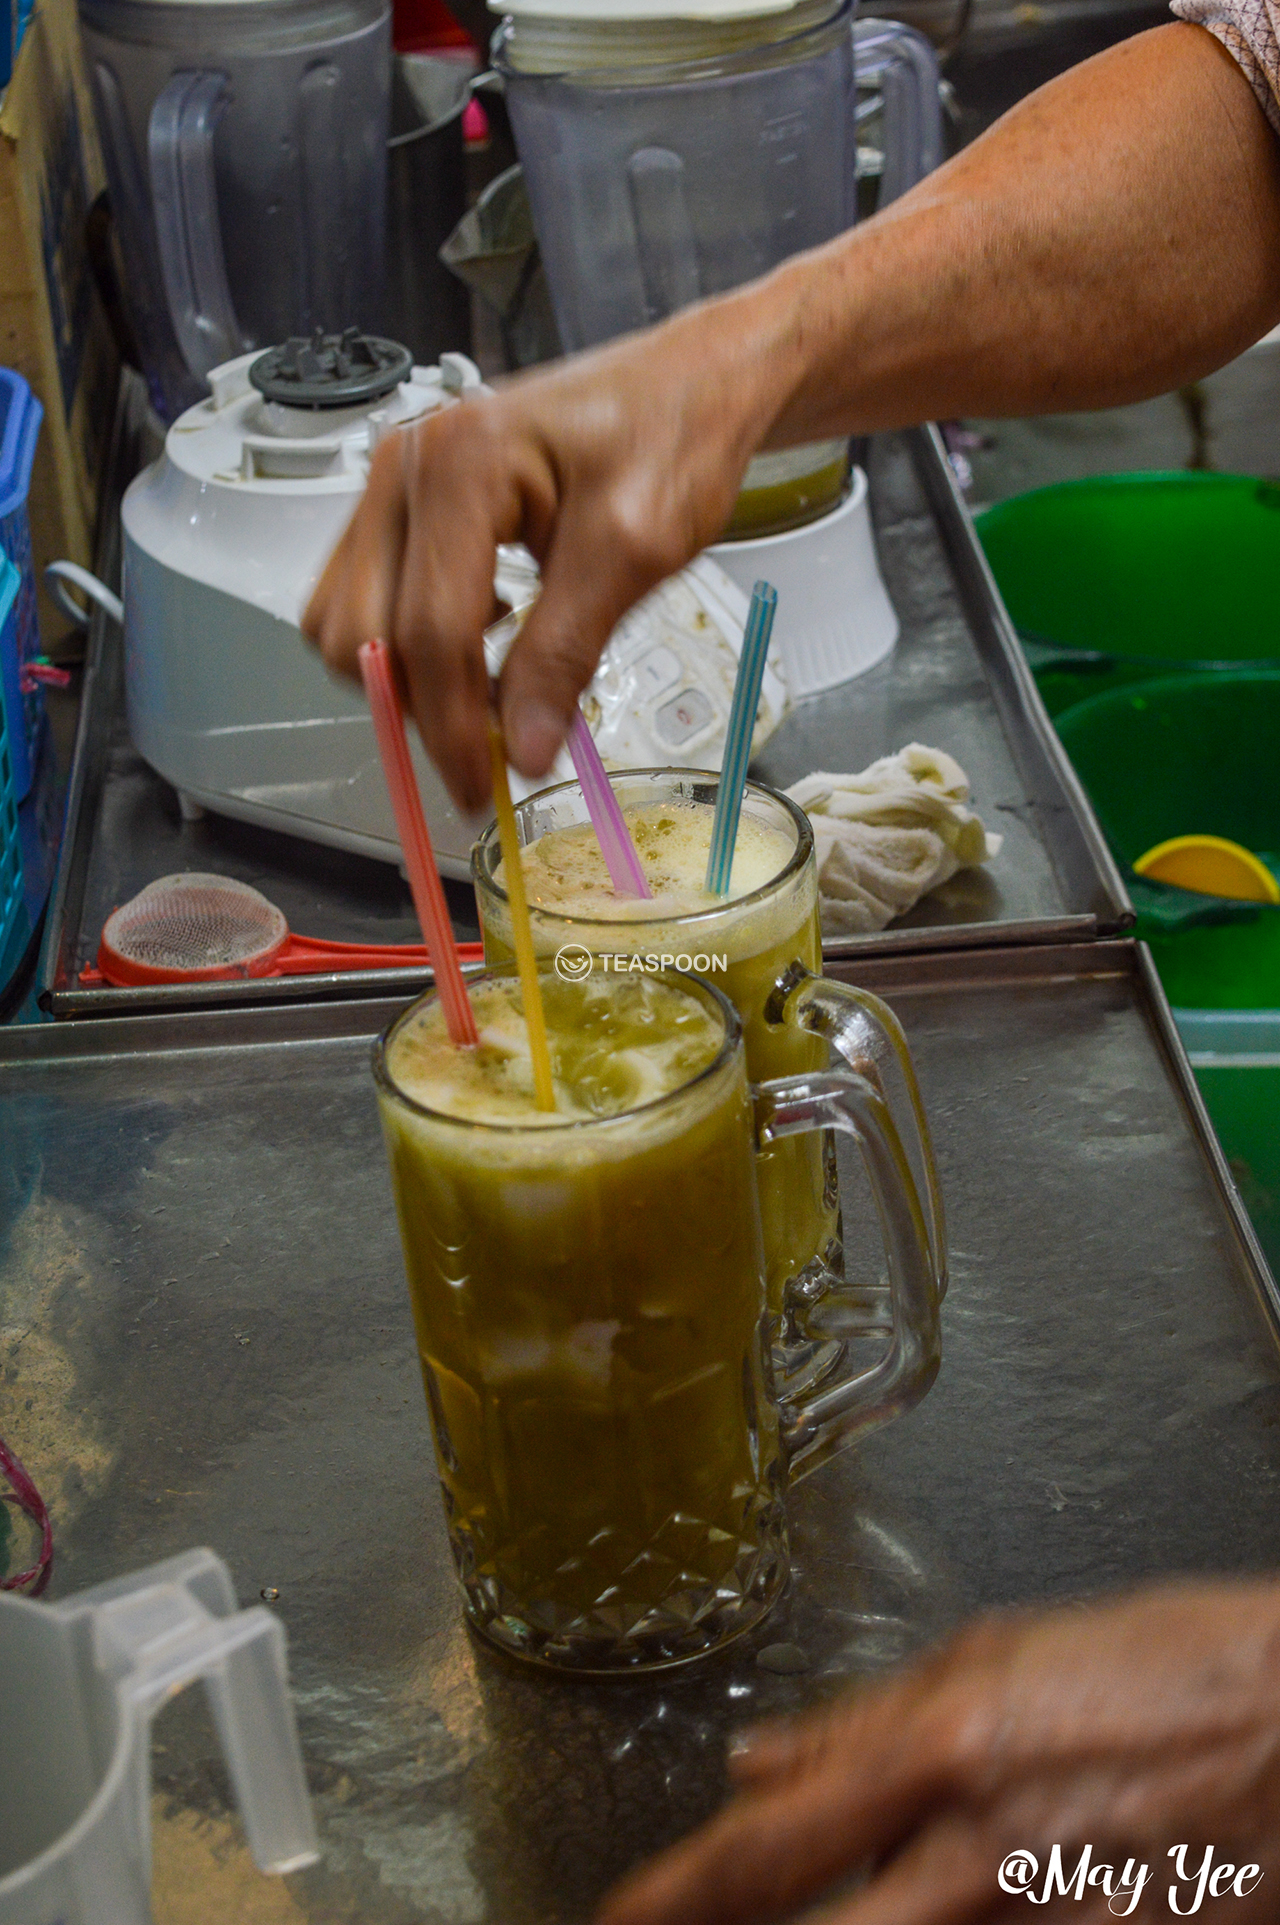 LUNCH Song Kheng Hai MAO ZHONG DRINK STALL SUGARCANE & COCONUT DRINK MAKING (2)